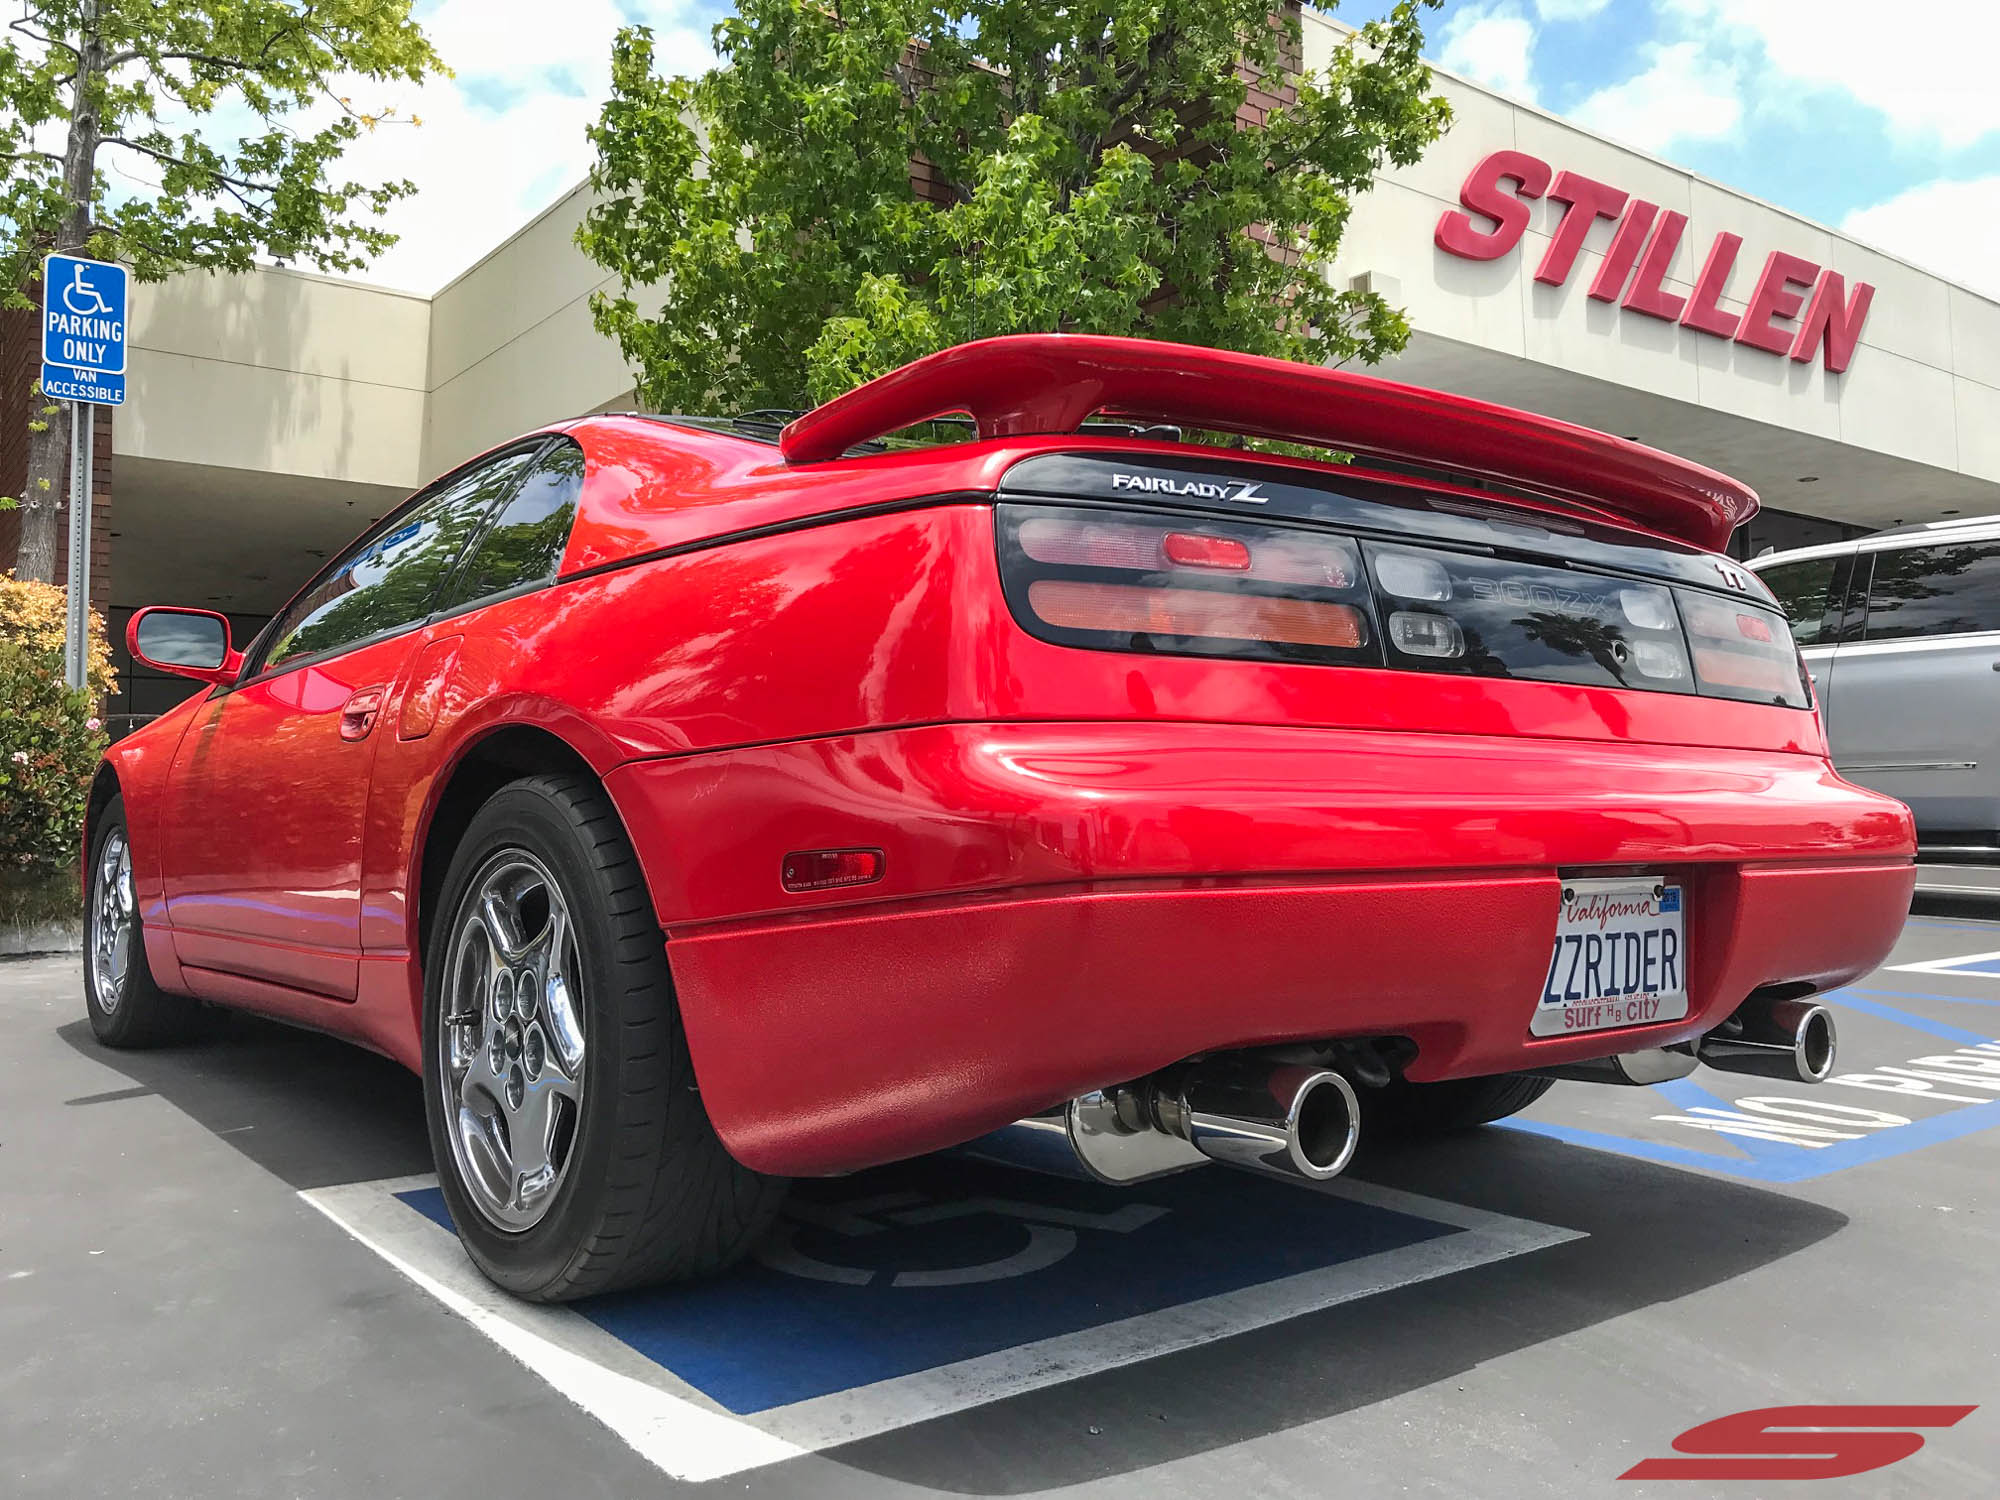 Z32 300ZX ZZRIDER Red at STILLEN (13)